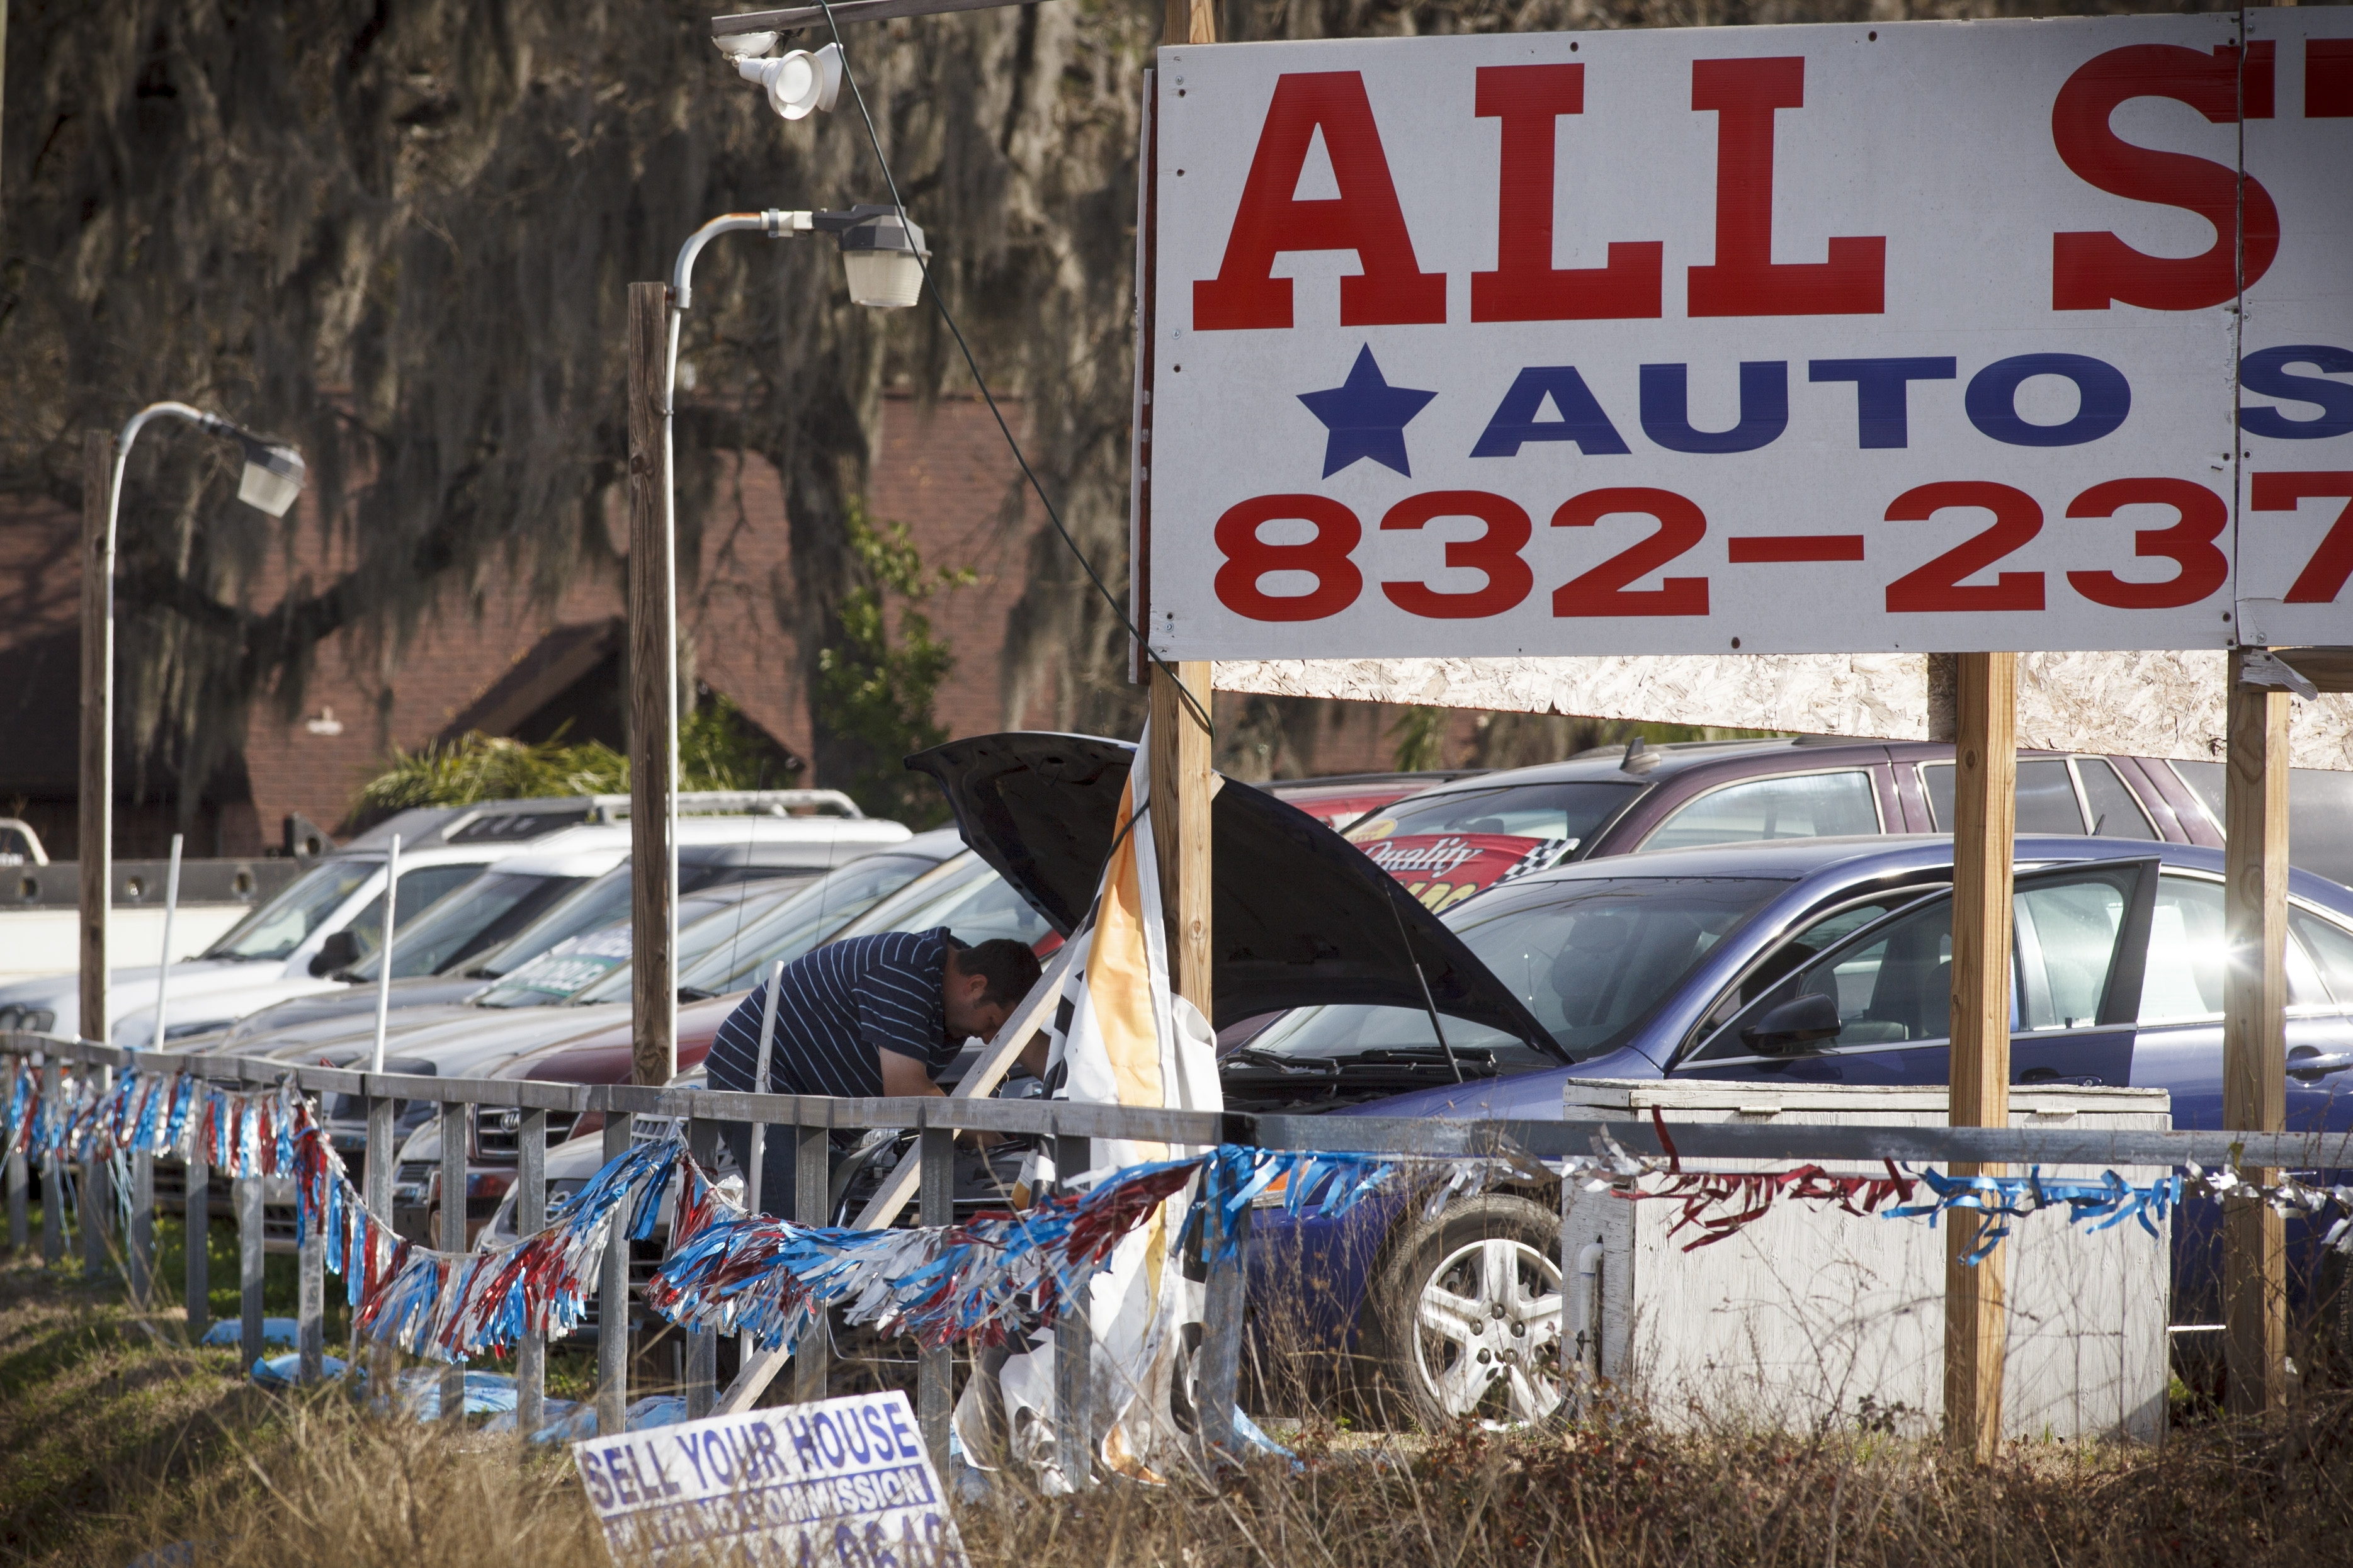 Cars for sale at All Stars Auto Sales, which like all used dealers is not required to repair vehicles recalled for safety defects, in Cypress, Texas, Jan. 30, 2015. A Texas man who died when an airbag sent shrapnel into his neck had purchased the 2002 Honda Accord here, but the dealership did nothing illegal, thanks to the lobbying power of auto dealers and some manufacturers. (Michael Stravato/The New York Times)